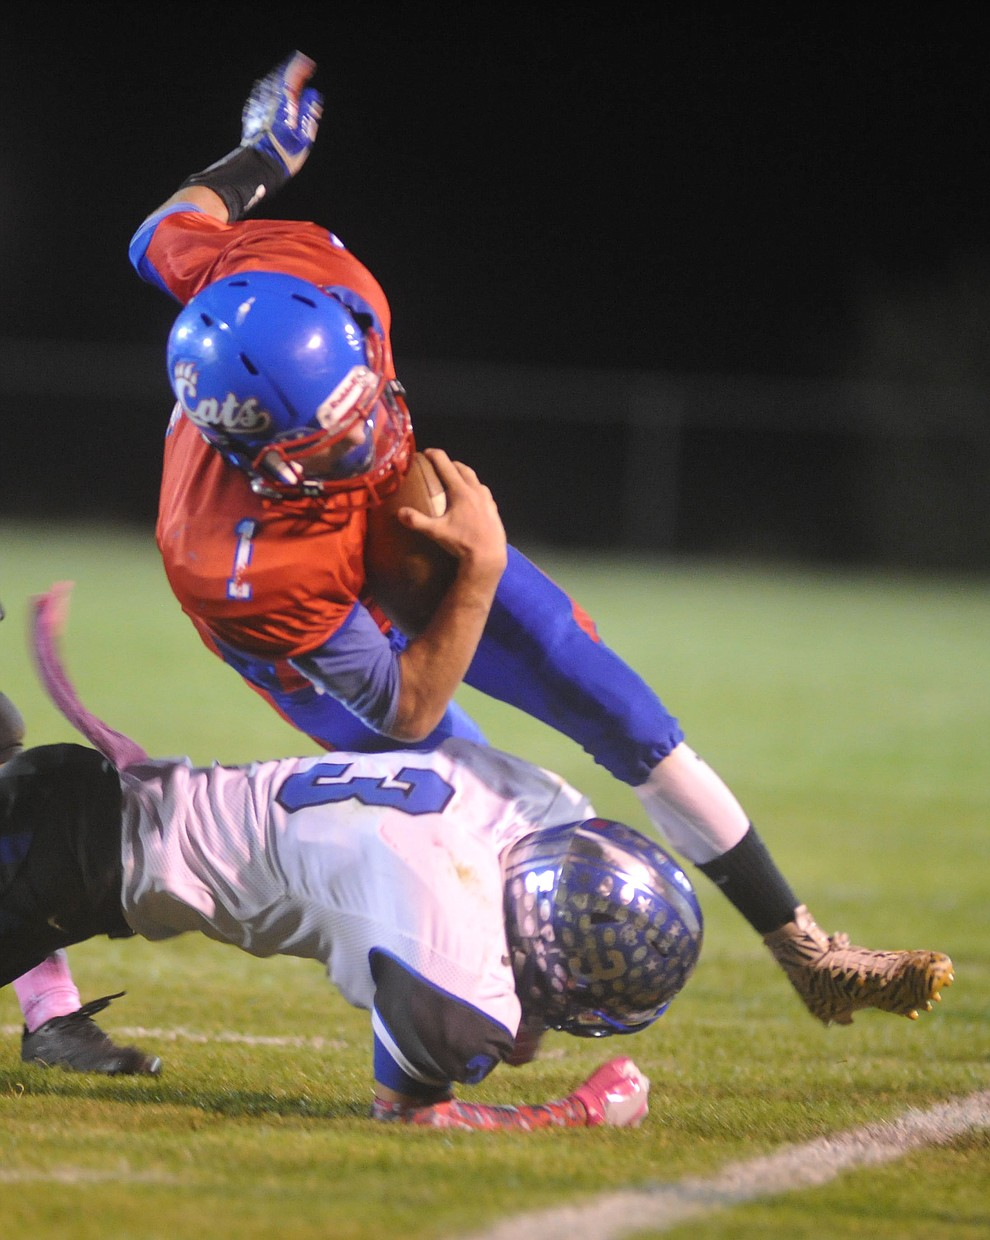 Mayer's Dylan Wilhide (1) gets tackled on the sidelines by Scotty Finnerty (3) as the Wildcats faced the Bagdad Sultans Friday night in a matchup of top 4 teams in the AIA 1A rankings in Mayer. (Les Stukenberg/Courier)